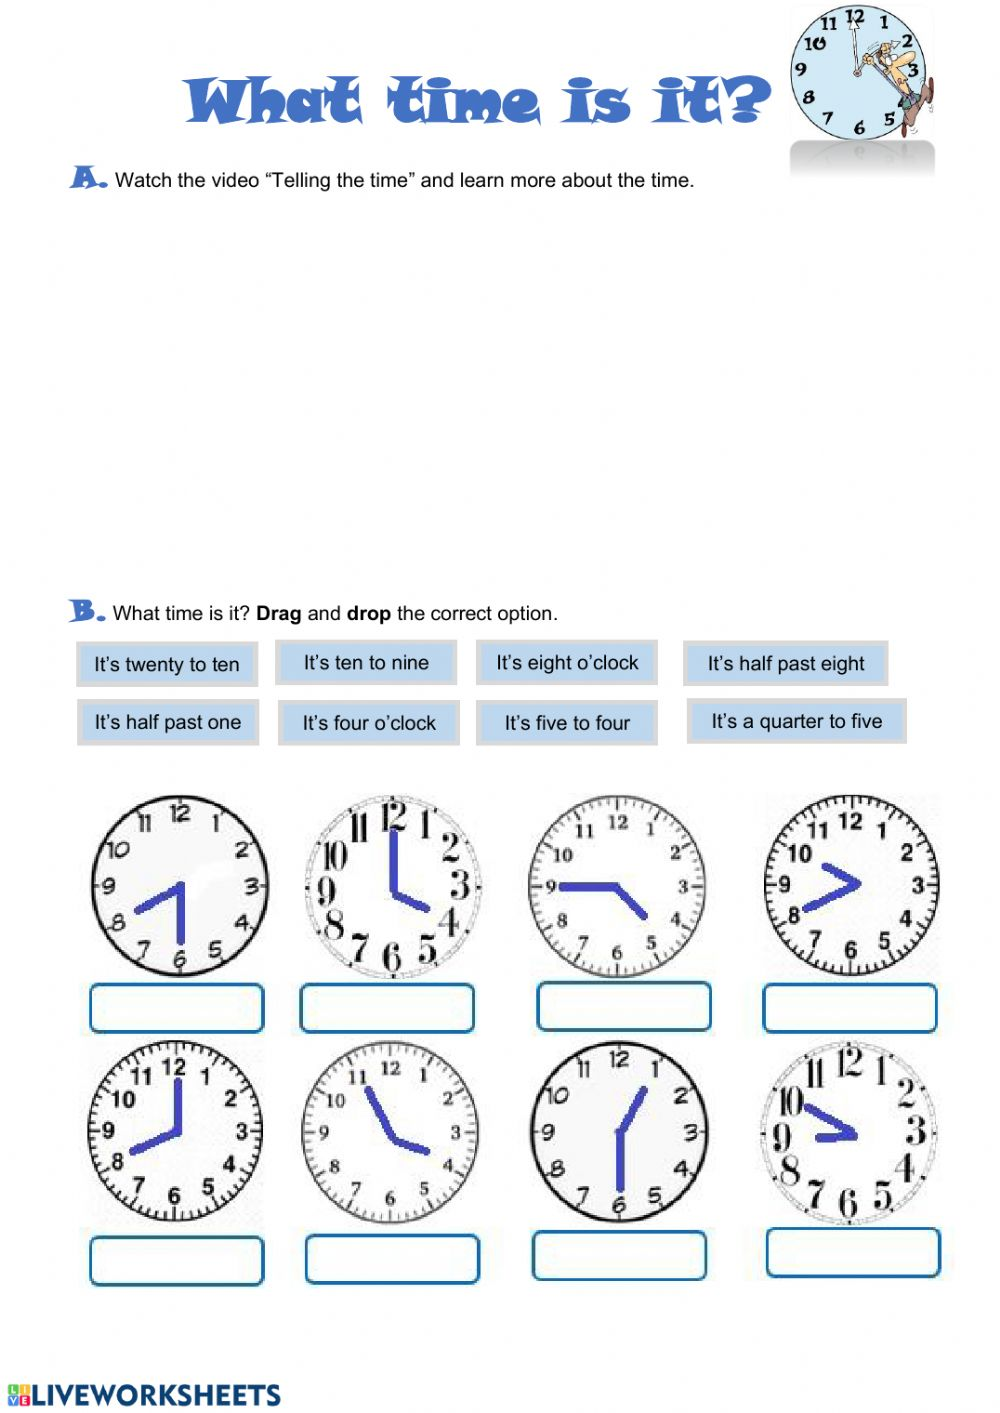 What time is it activity for 20 grade